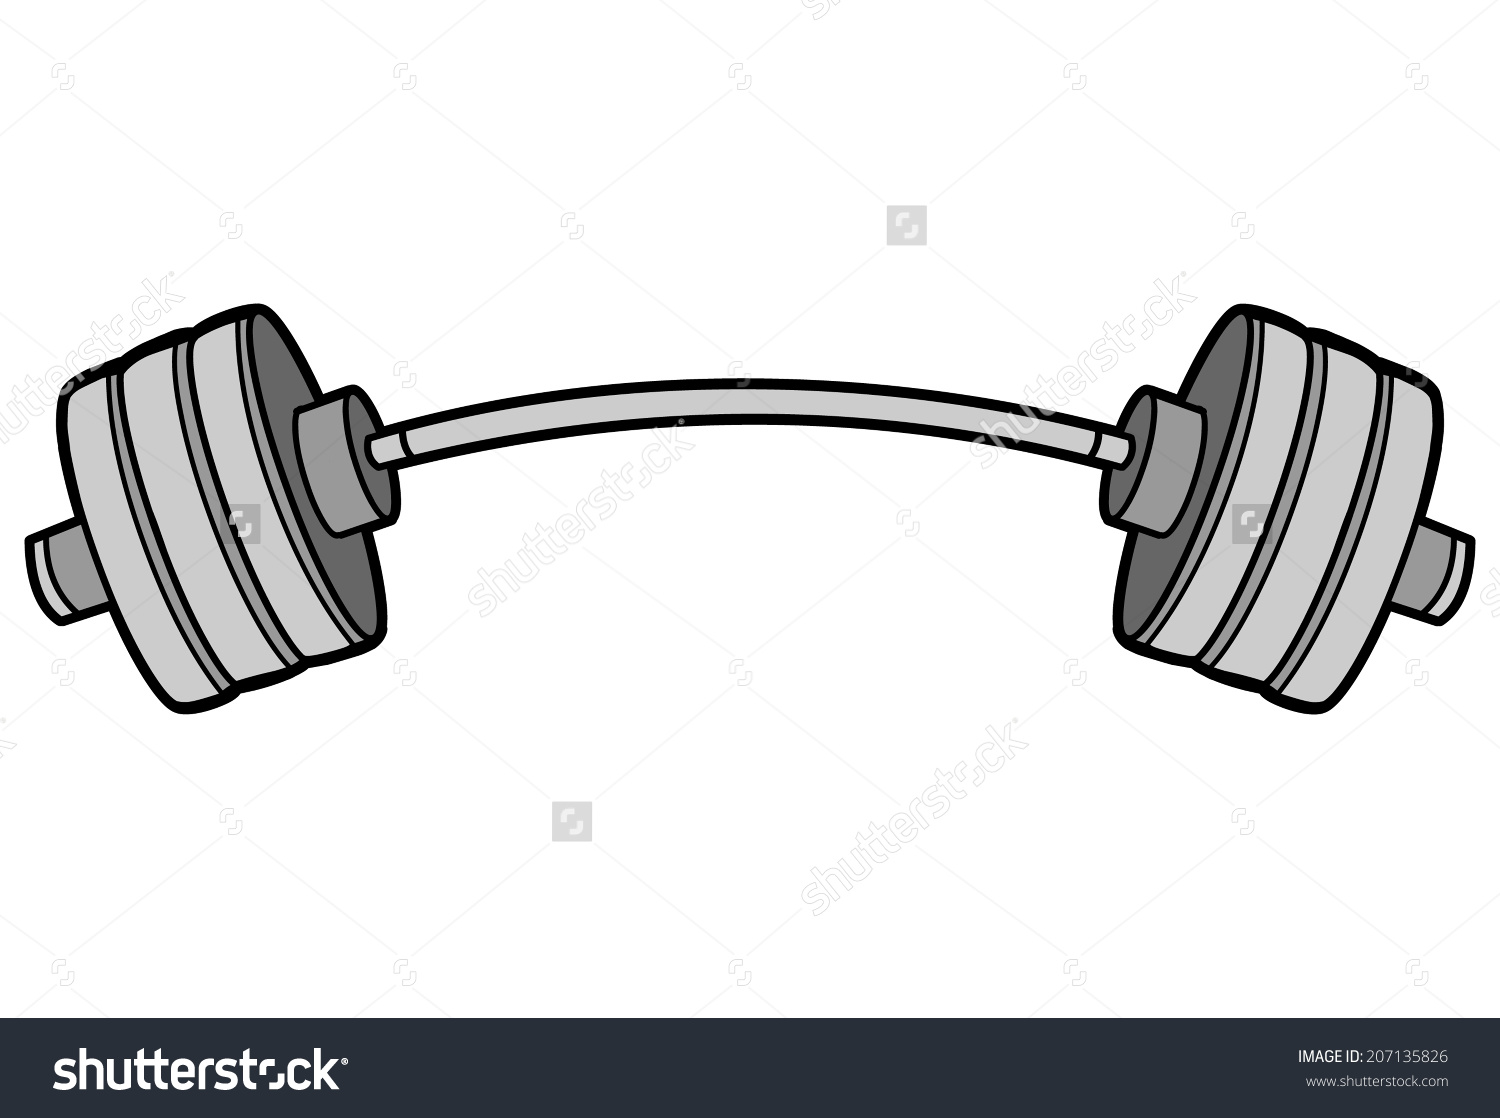 Barbell Clipart. Save To A Lightbox .-Barbell Clipart. Save to a lightbox .-3